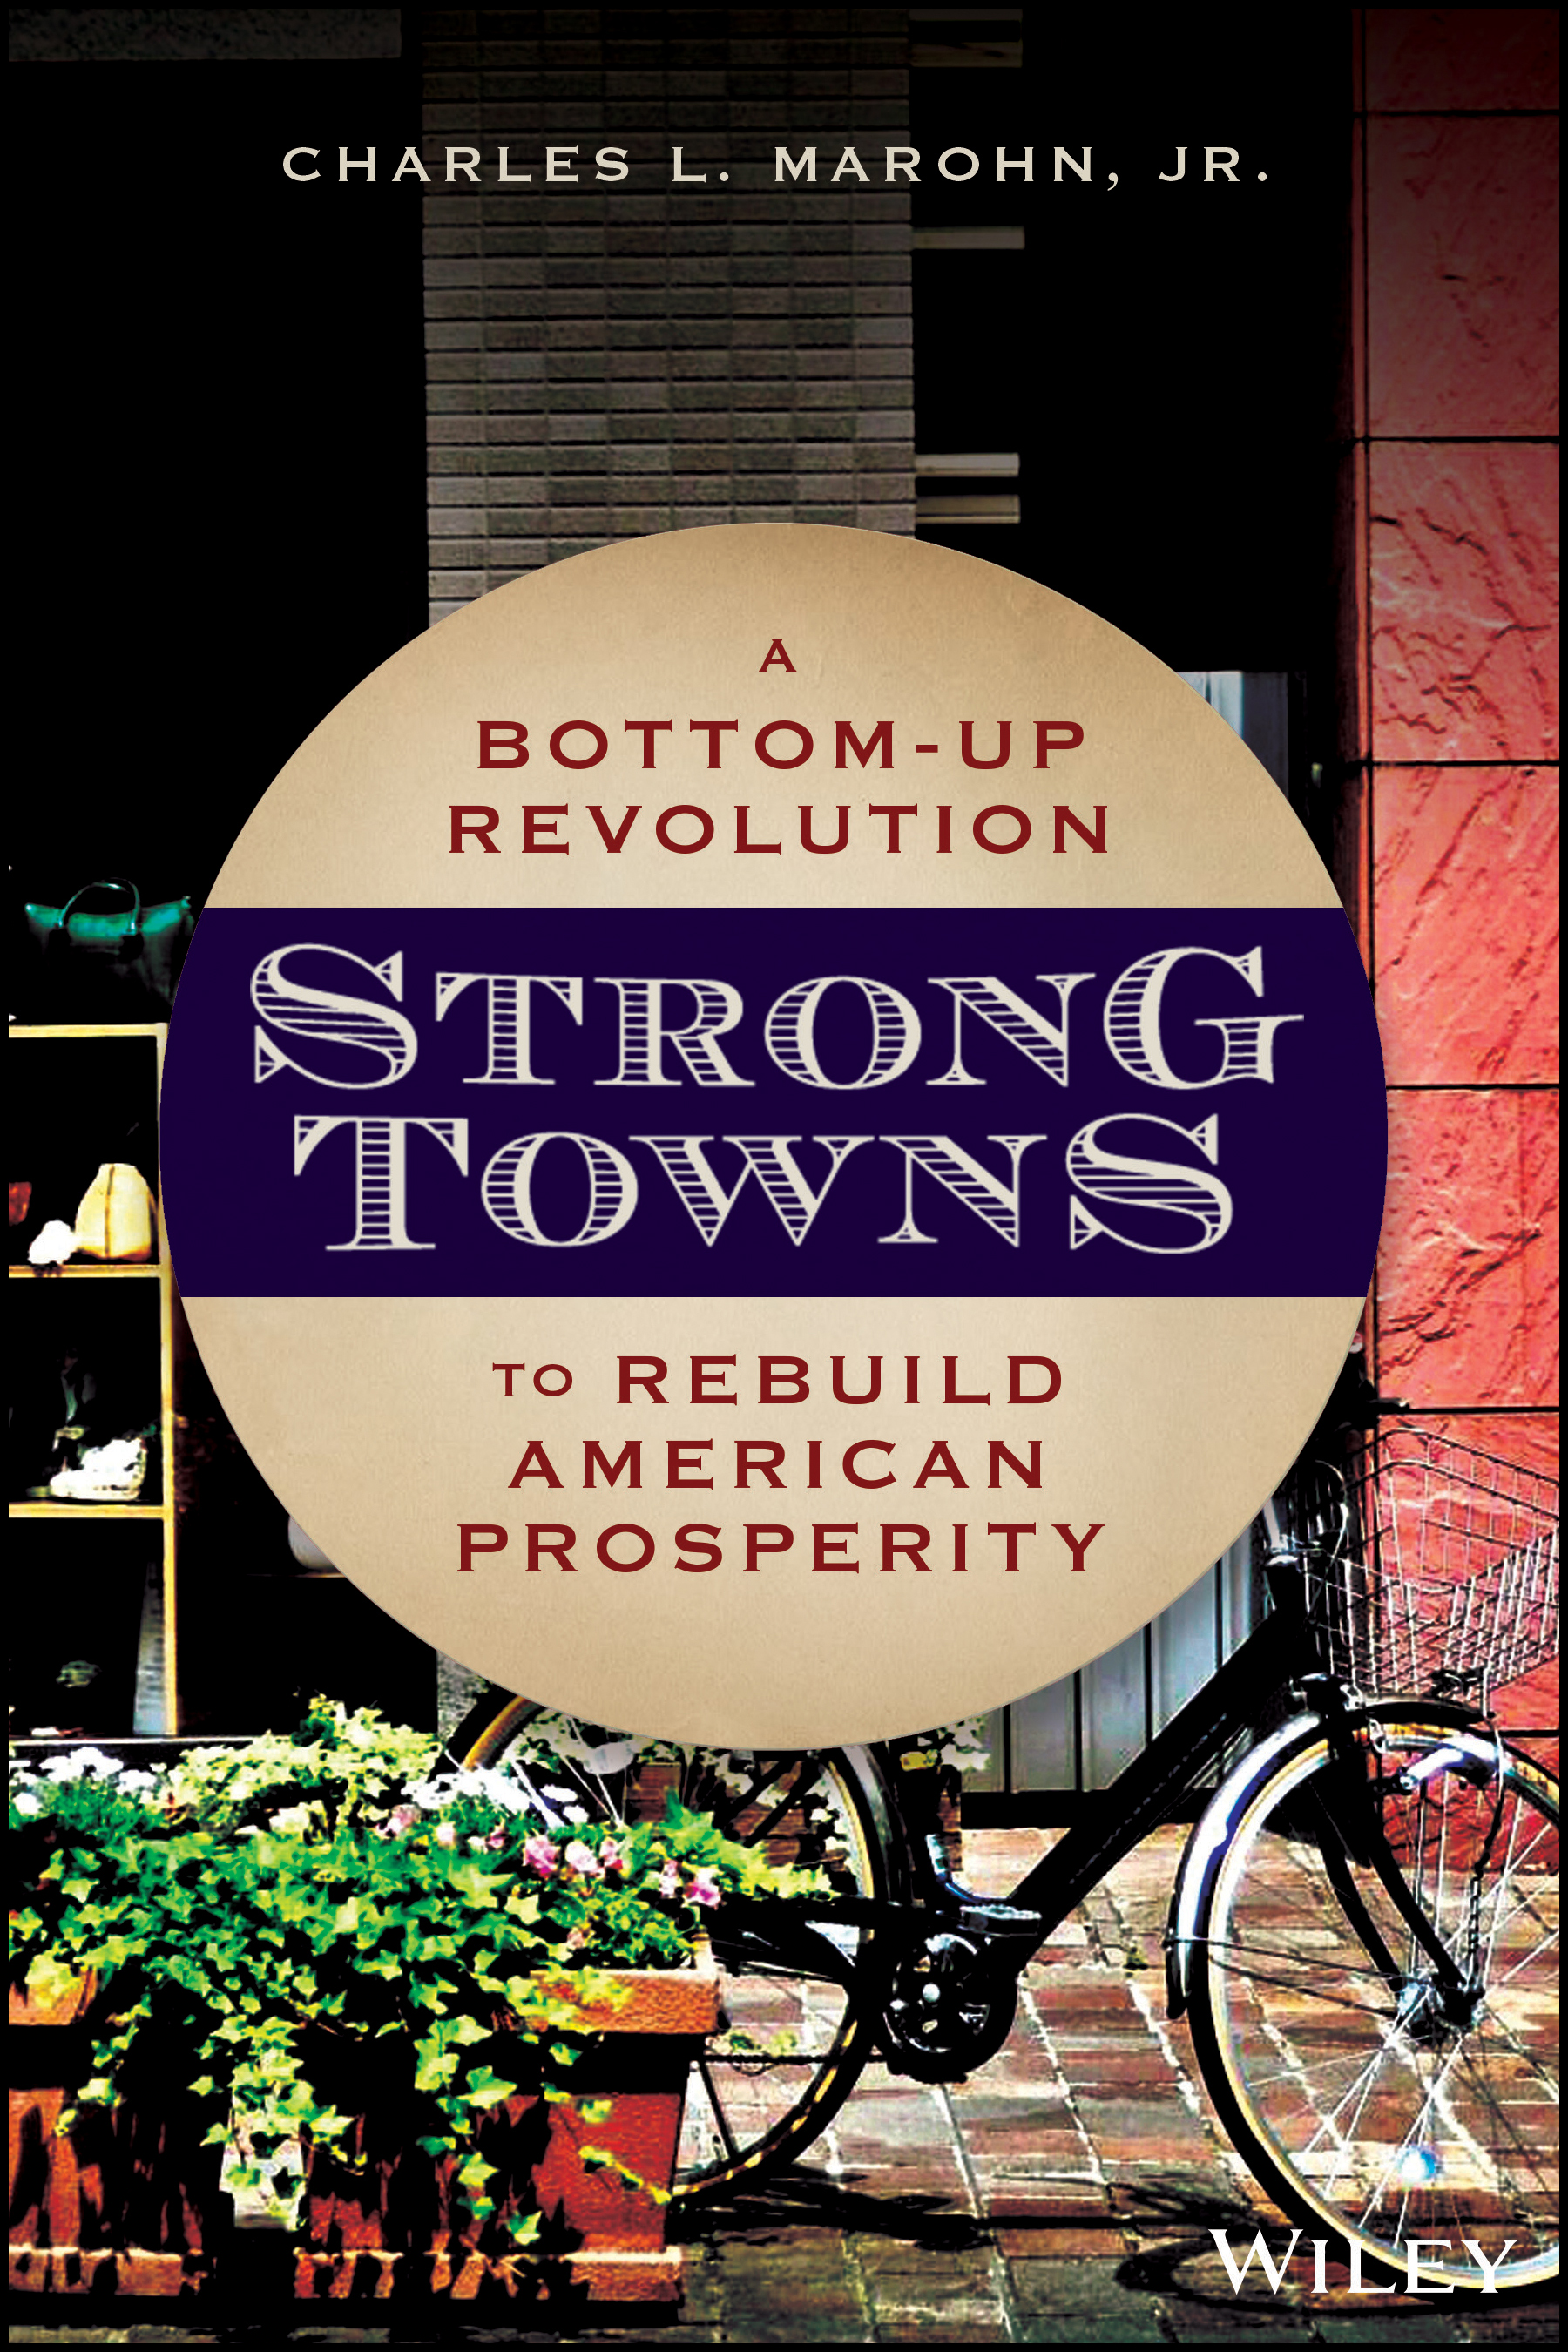 Strong Towns cover HI RES.jpg